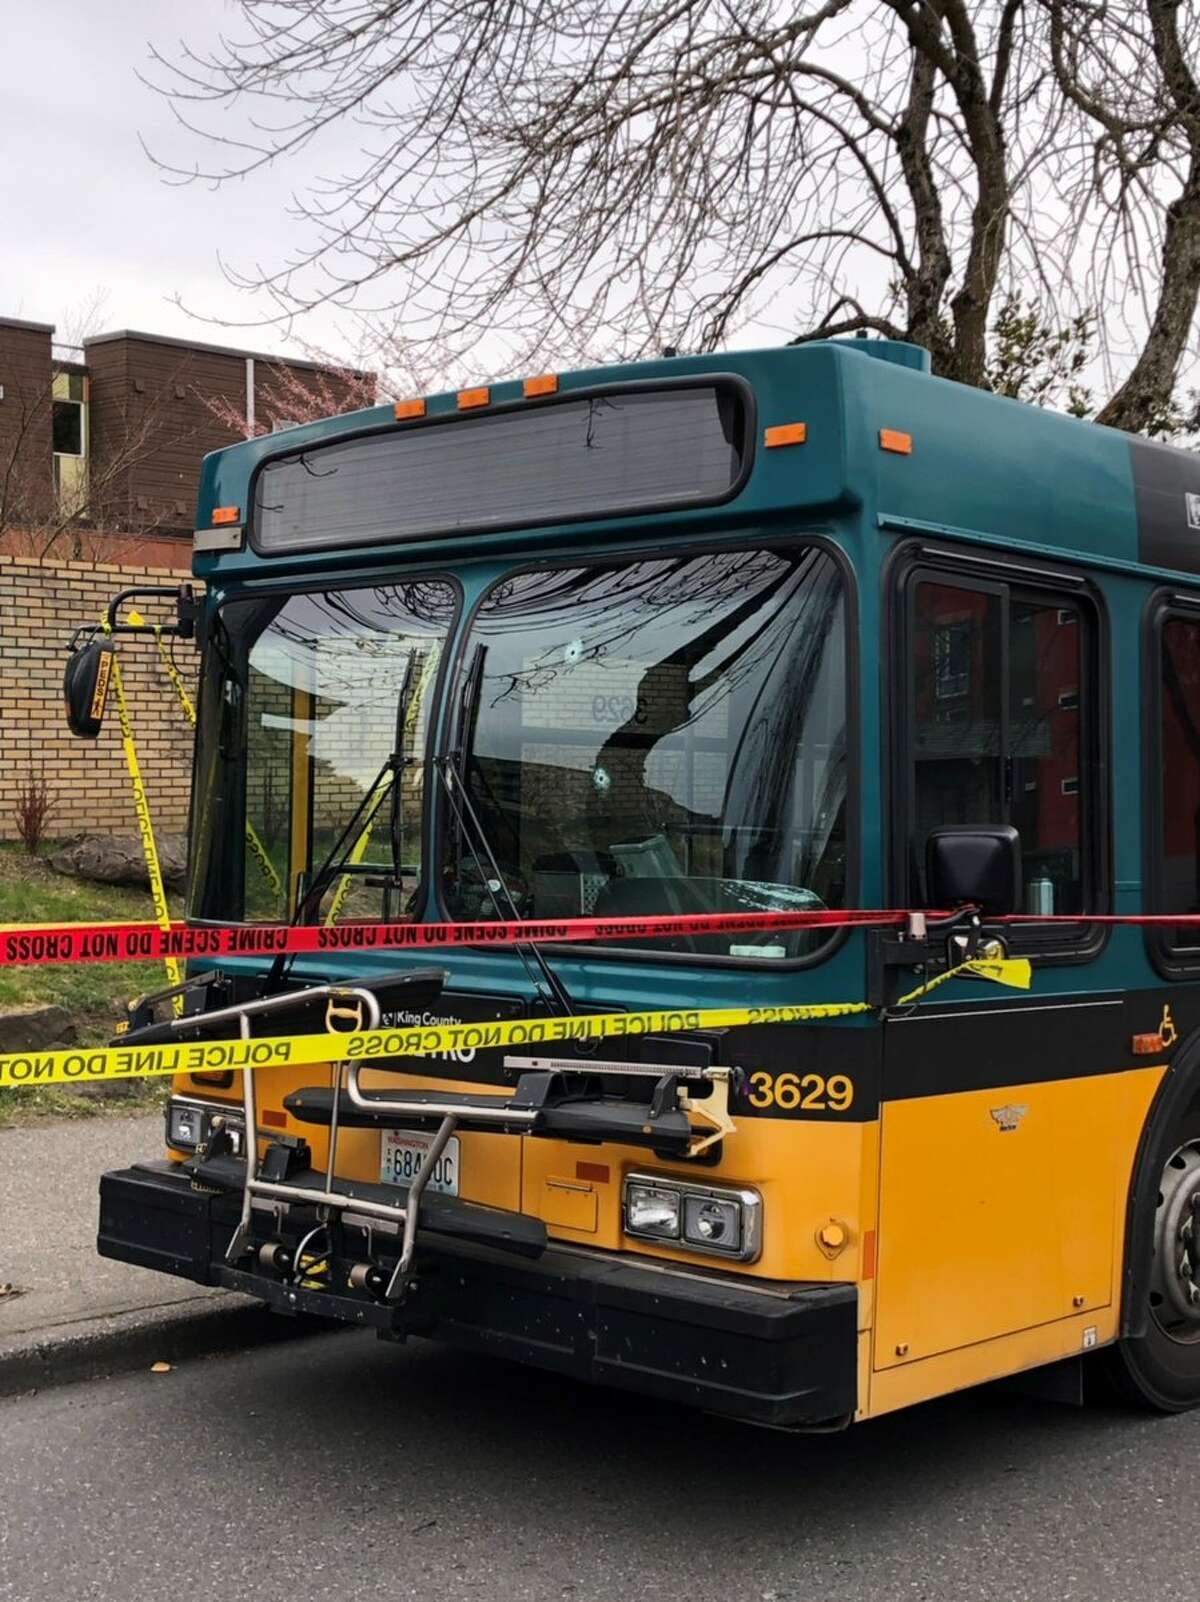 The Seattle Police Department shared this photo of bullet holes in a bus after two people were killed and two were injured in shooting Wednesday, March 28, 2019 in Lake City.